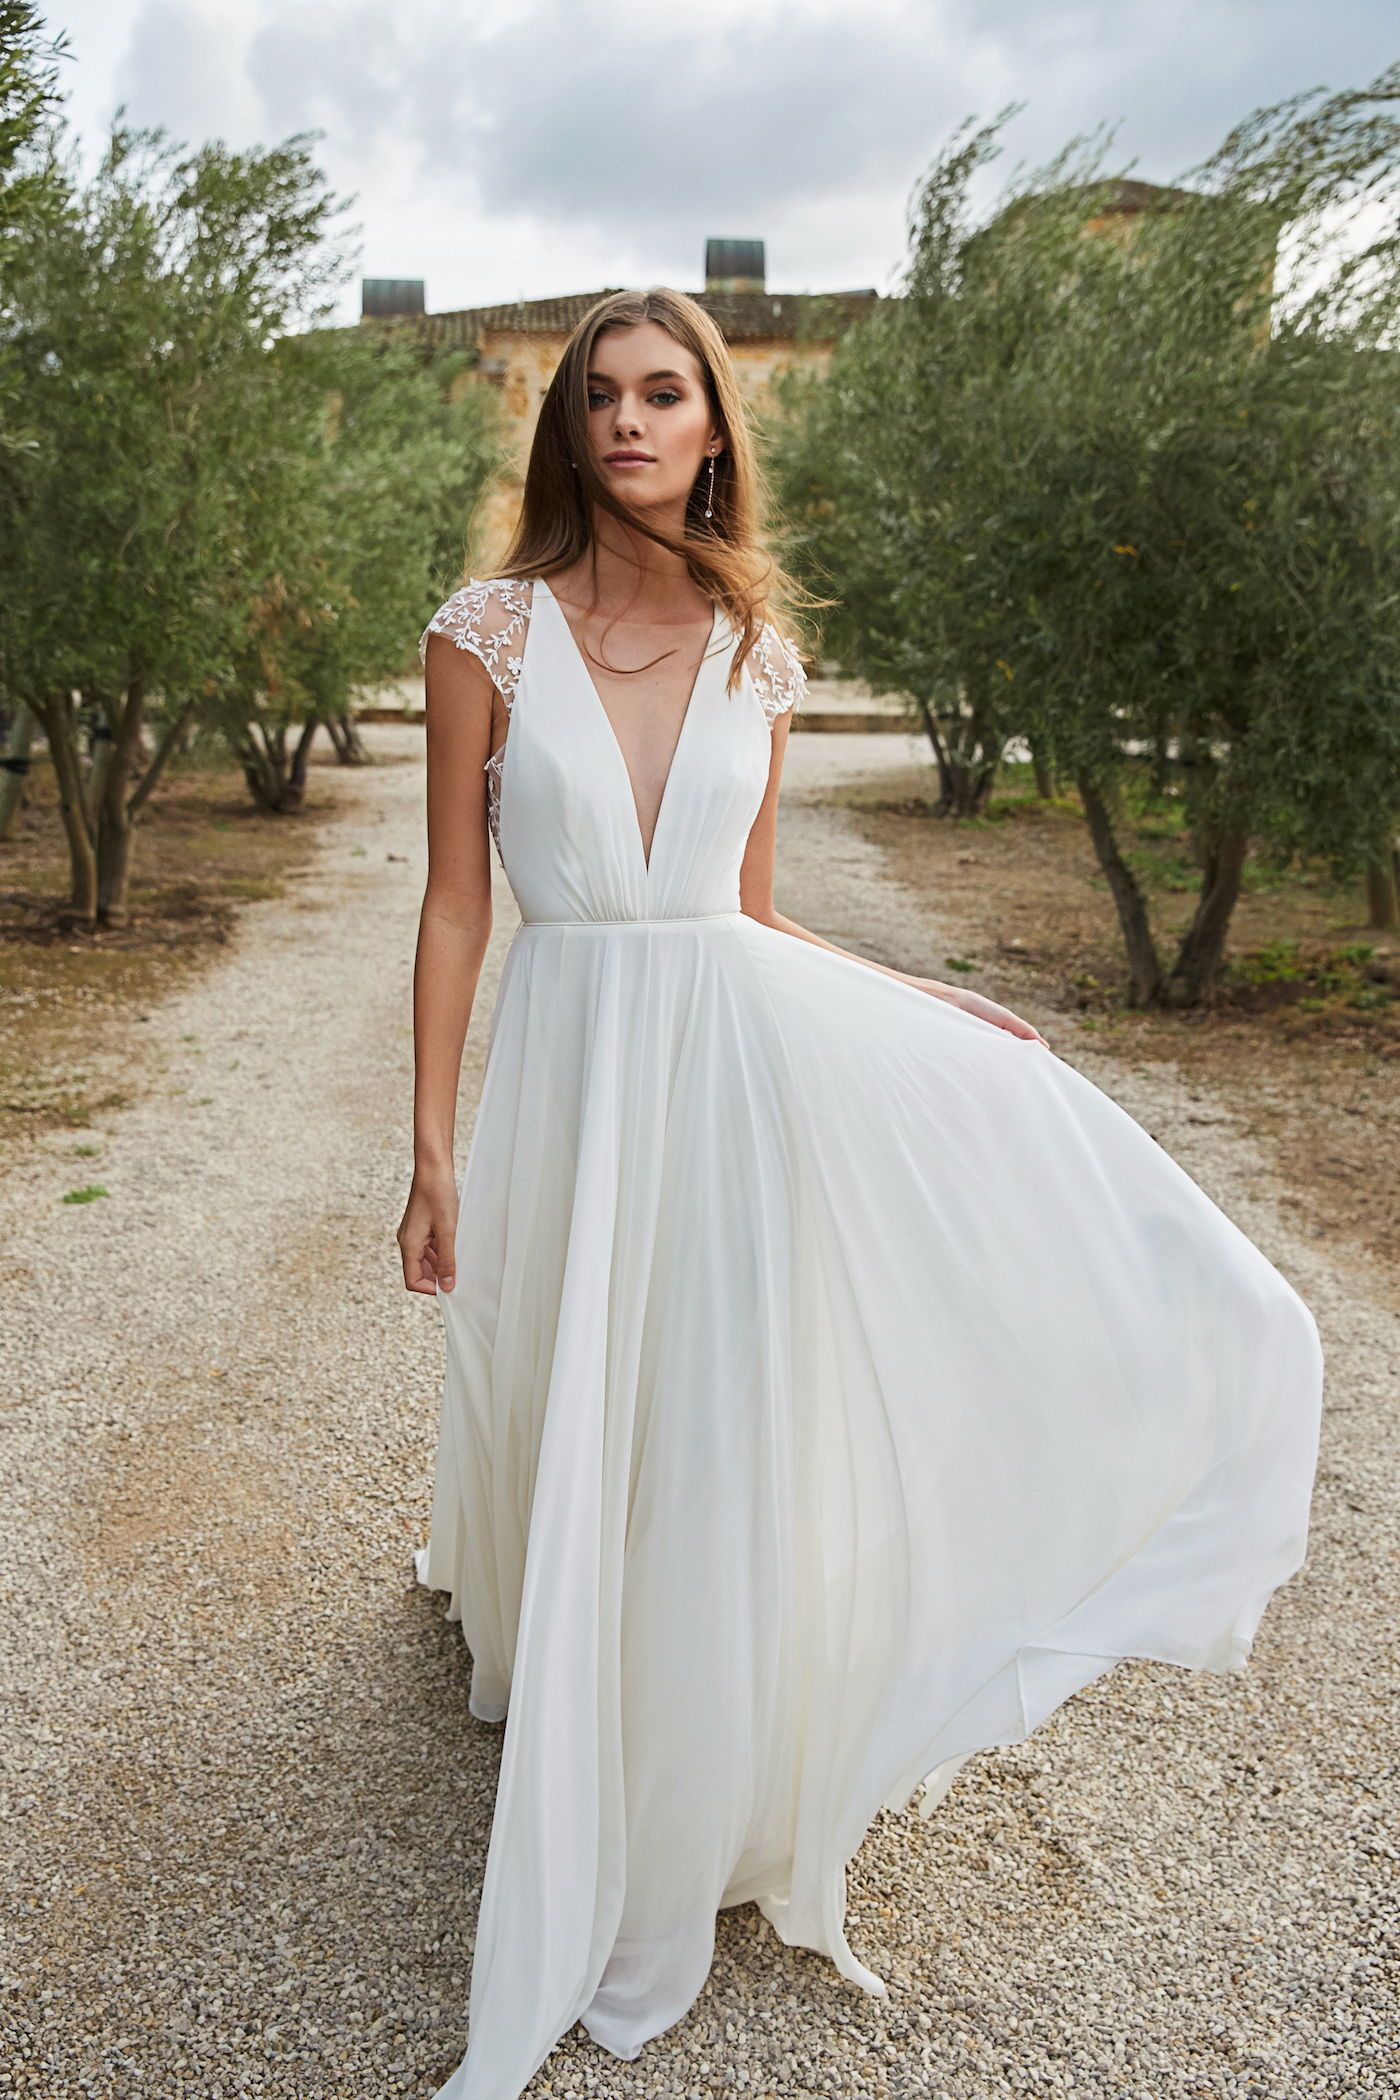 Lace Cap Sleeves A Easy Fitting Silhouette And Breezy Beautiful Skirt The Tegan Gown By In 2020 Bohemian Wedding Gown Beach Wedding Dress Lace Wedding Dress Country,Bling Gorgeous Mermaid Wedding Wedding Dresses